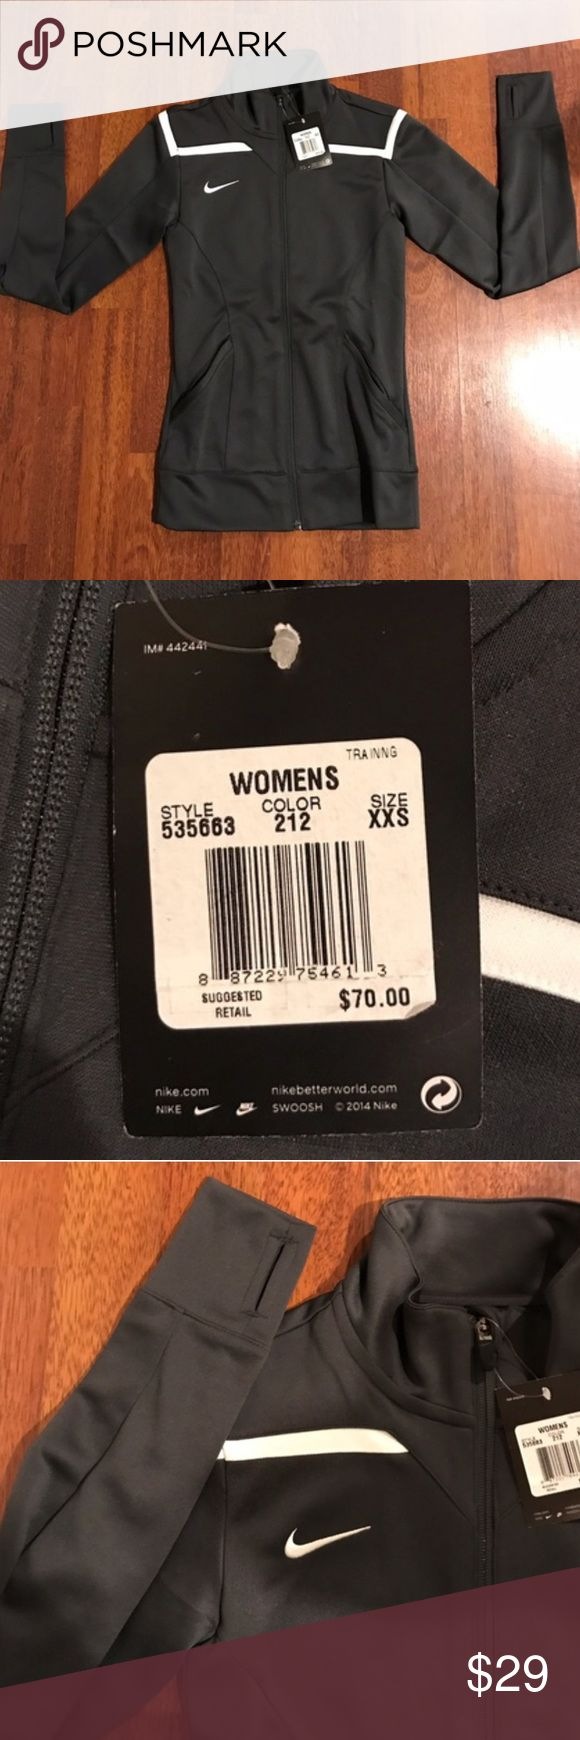 Women's Nike jacket Size xxs, Nike dri fit material with thumb holes Nike Jackets & Coats